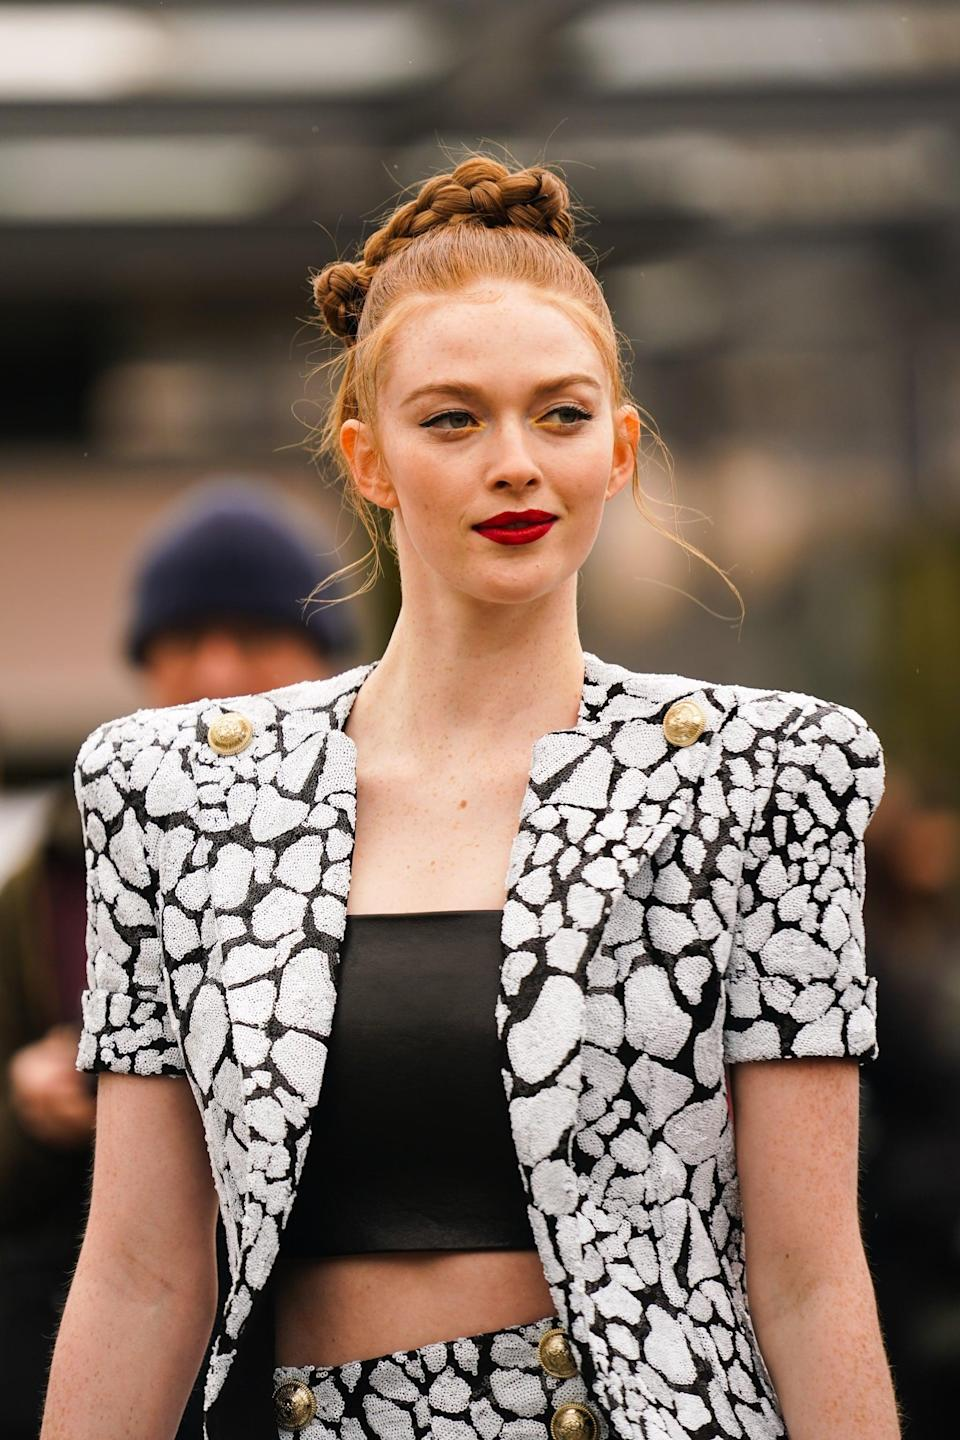 """<p>We're going to see a lot of redheads this spring thanks to Netflix's <strong>The Queen's Gambit</strong>. """"The red color is absolutely gorgeous, whether it is fierce, or if even toned-down shade closer to strawberry,"""" said celebrity hair colorist <a href=""""https://www.instagram.com/auracolorist/"""" class=""""link rapid-noclick-resp"""" rel=""""nofollow noopener"""" target=""""_blank"""" data-ylk=""""slk:Aura Friedman"""">Aura Friedman</a>. """"It really makes the pink undertones in skin pop."""" Just be careful: if you're seeking something low-maintenance this isn't it. Friedman explained you'll want to see your colorist regularly to maintain the shade's brightness. If it's good enough for Beth Harmon, it's good enough for us. </p>"""